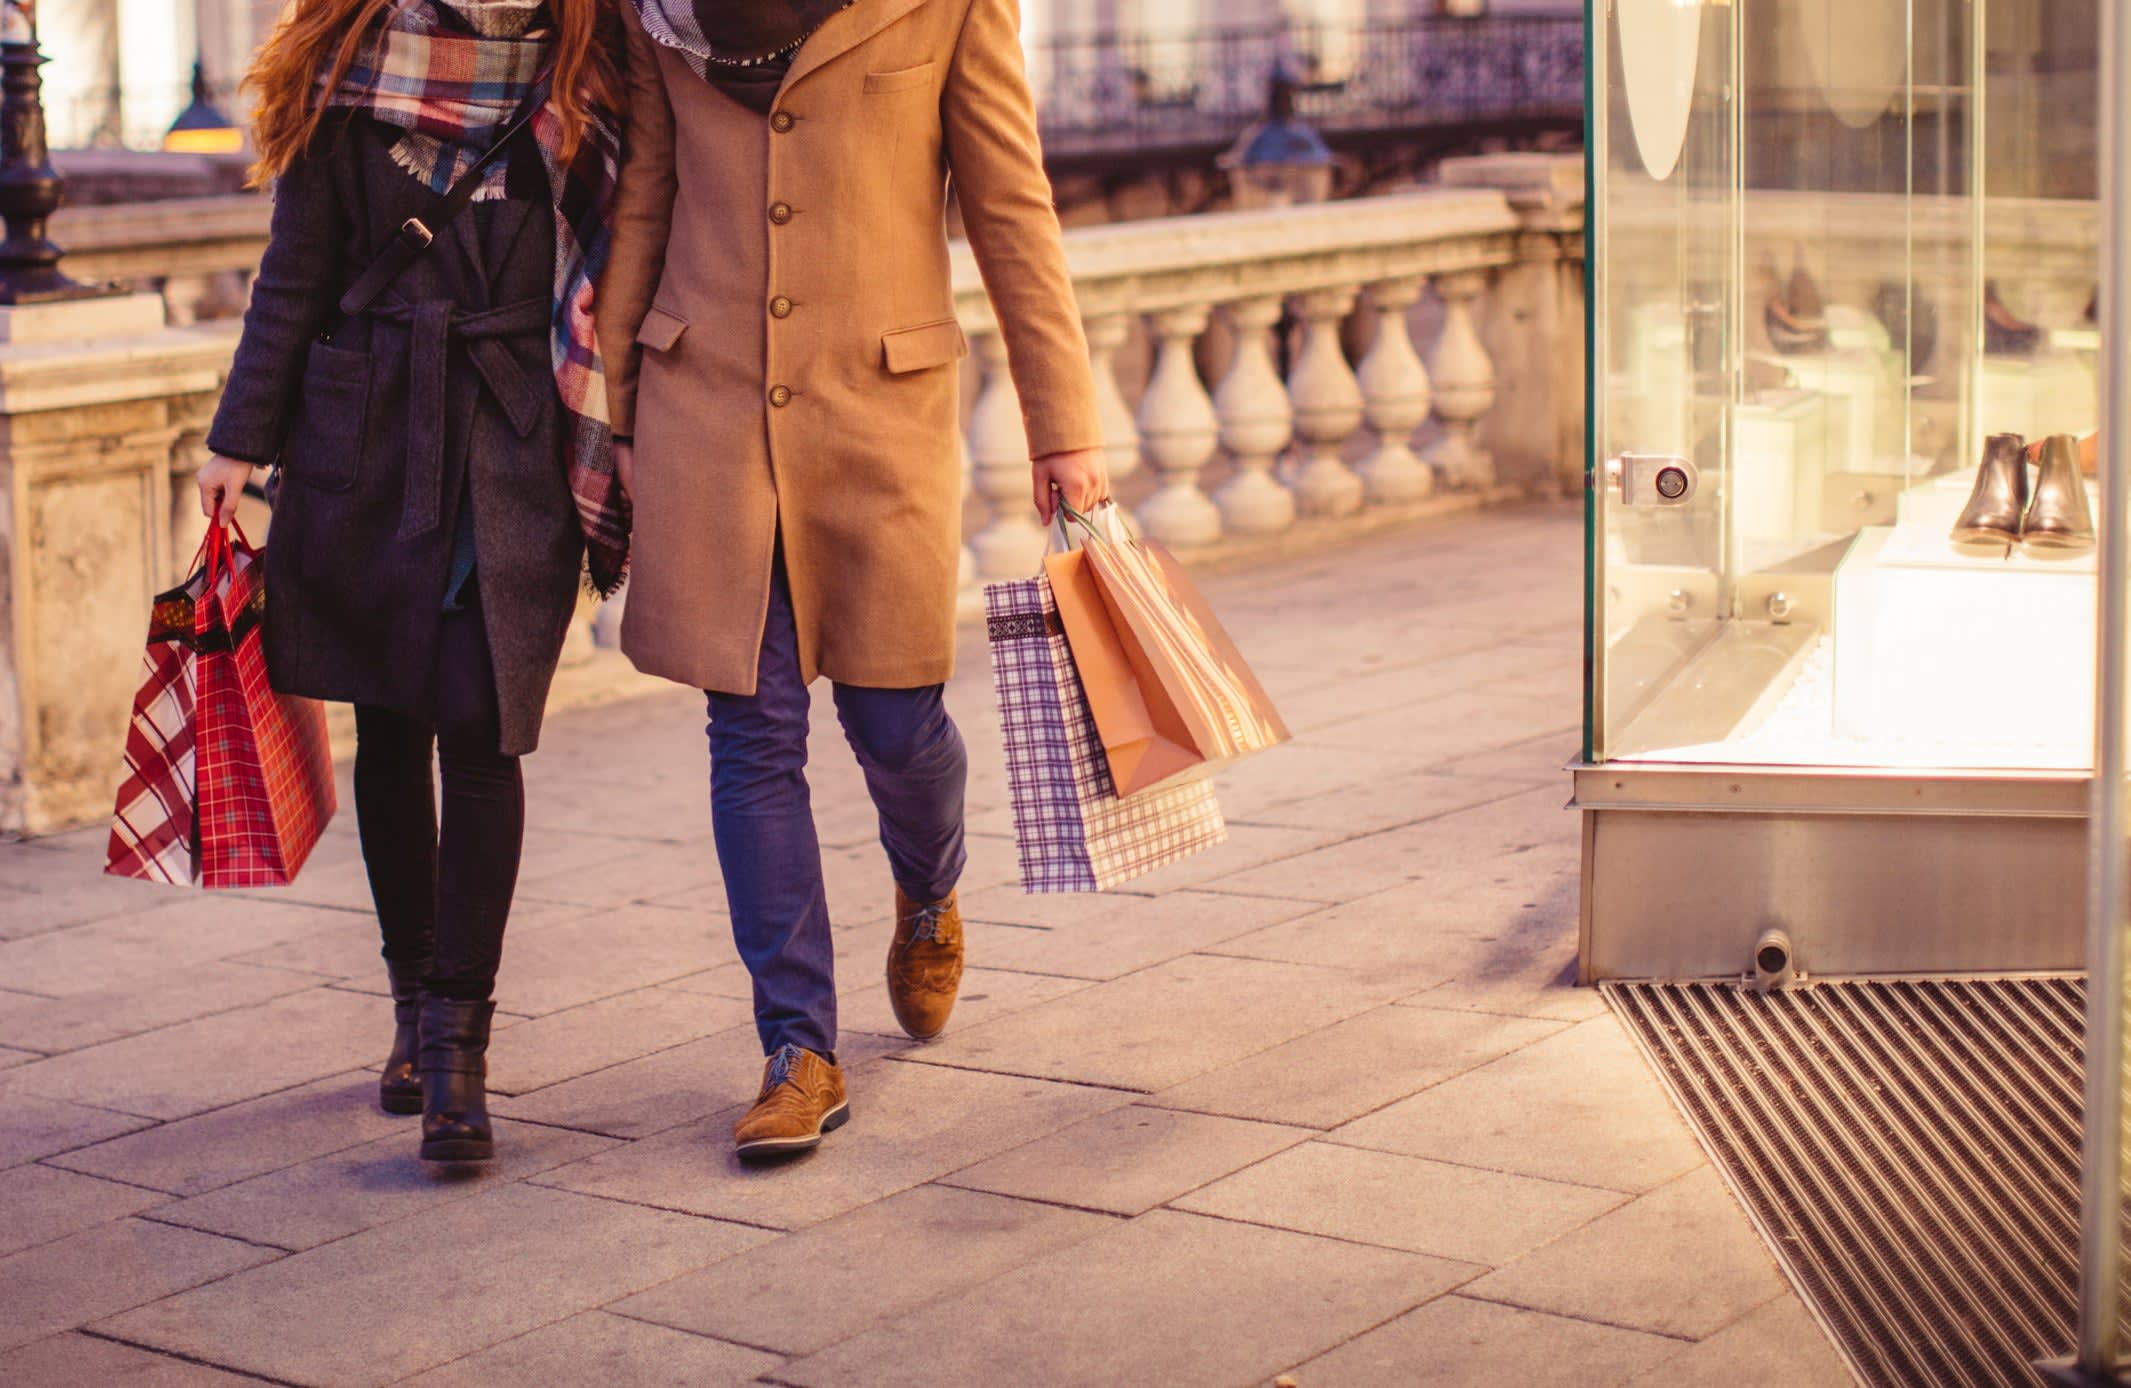 A couple holding shopping bags as they walk past a store